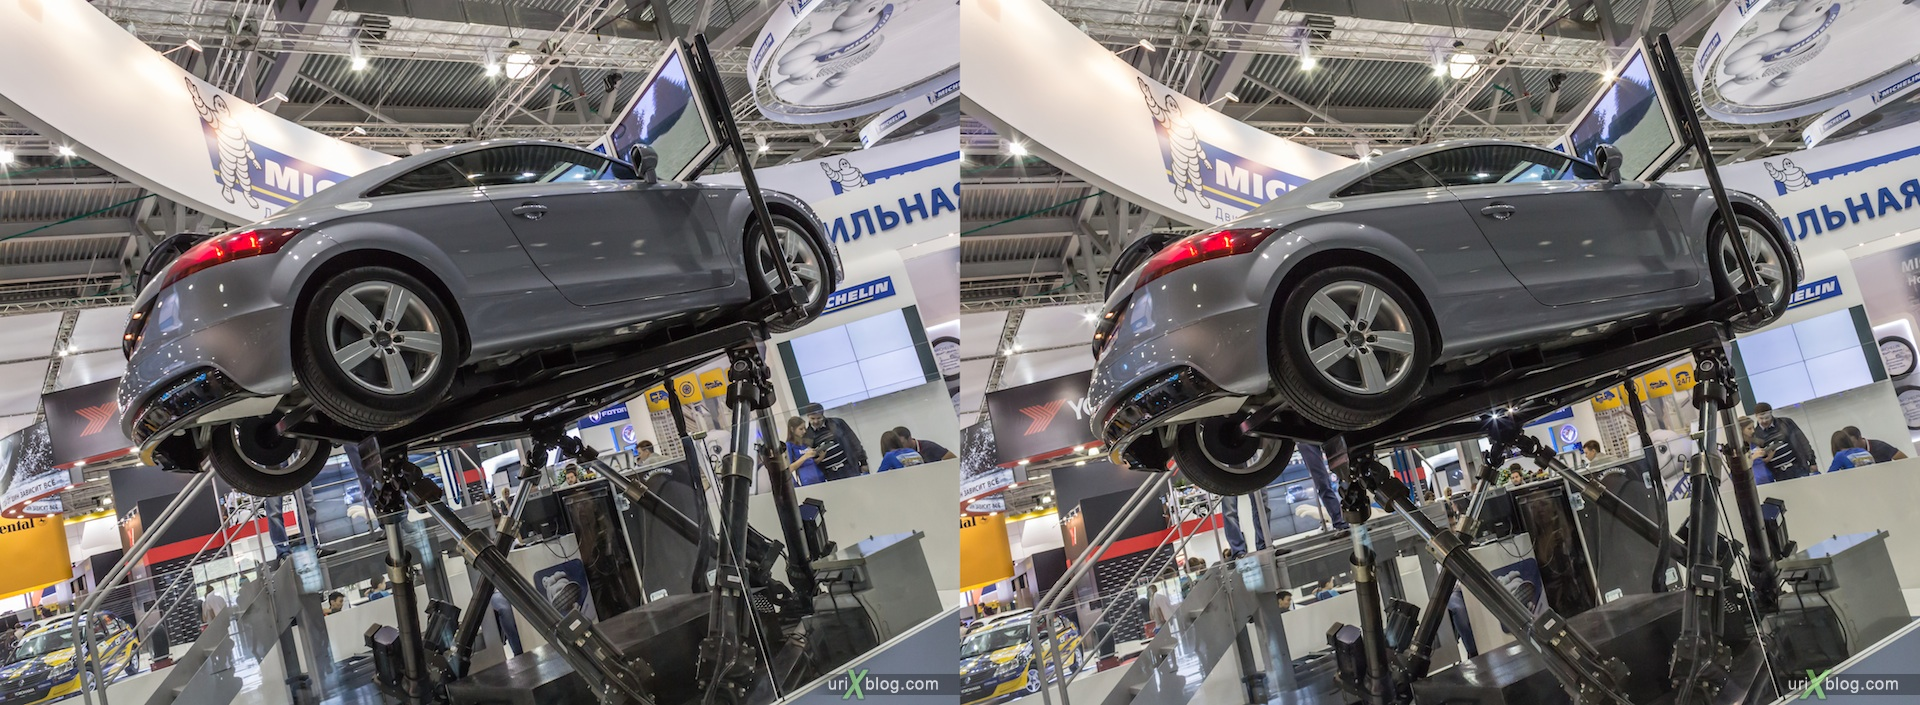 2012, Audi, Moscow International Automobile Salon, auto show, 3D, stereo pair, cross-eyed, crossview